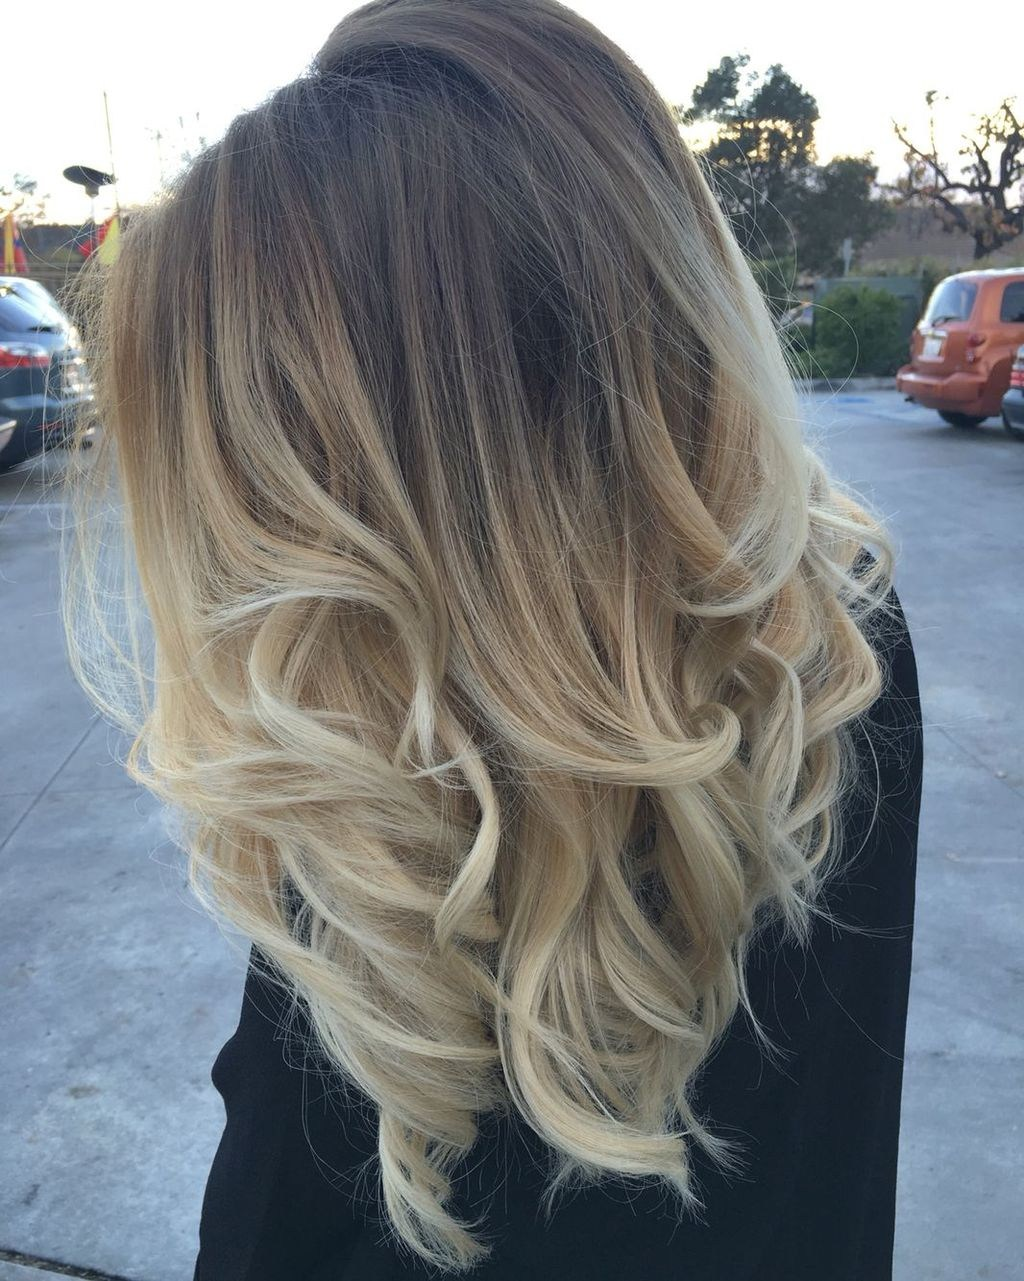 Hot Blonde Balayage Hairstyle Ideas For Any Season 10